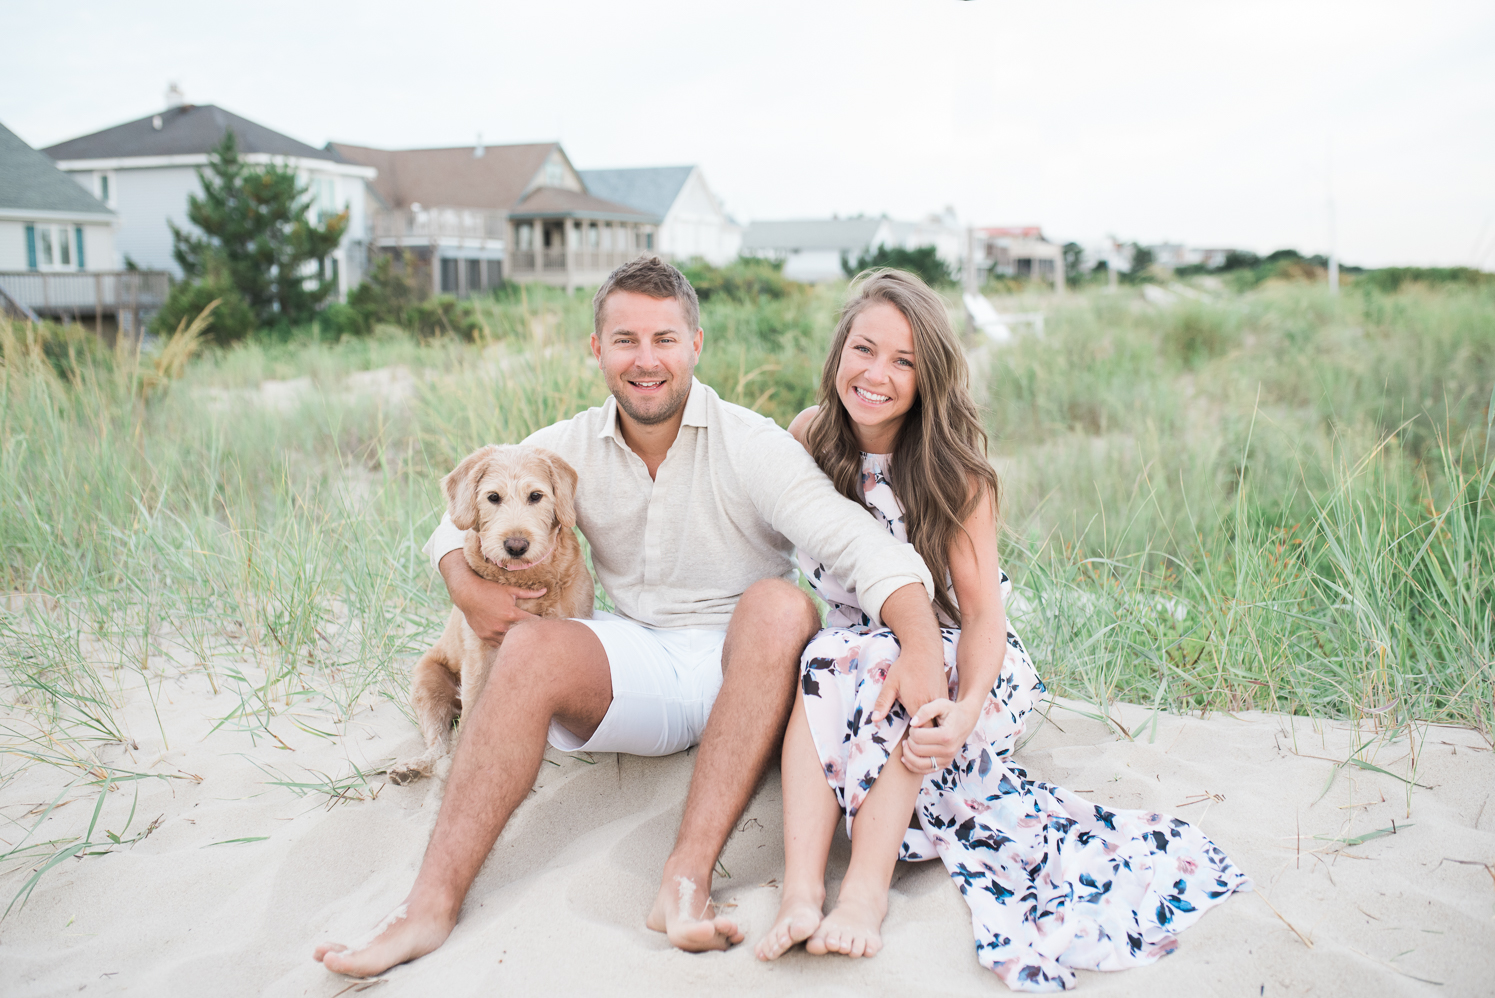 Lewes-Rehobeth-Bethany-Beach-Photographer-Family-Lifestyle-Delaware-Maryland-Photos By-Breanna-Kuhlmann-24.jpg